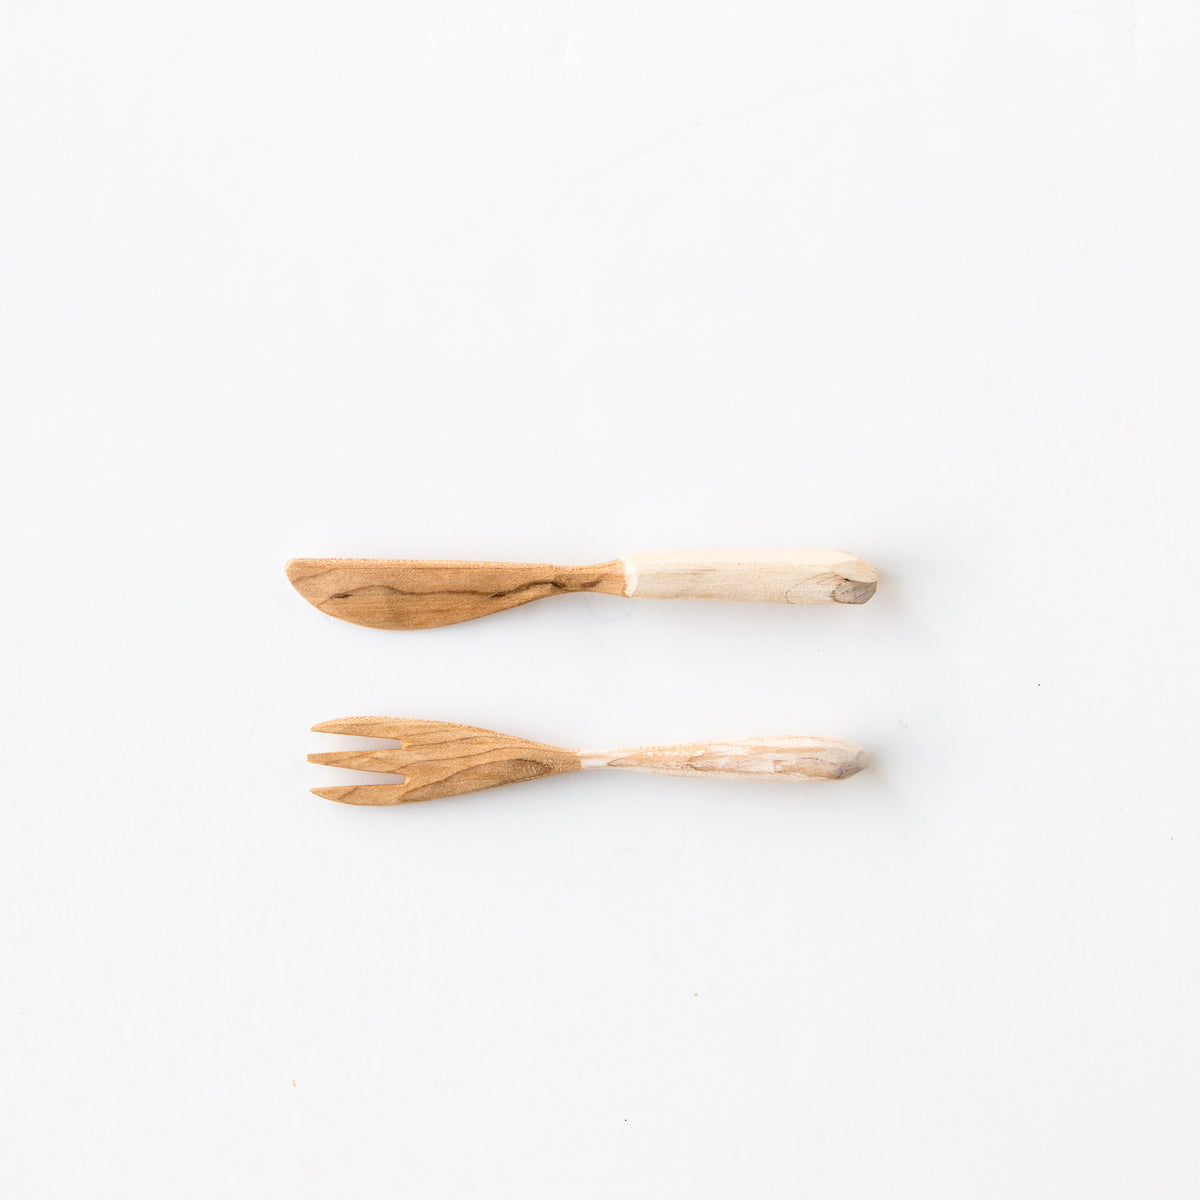 Wooden Fork and Knife Set - Handmade in Recycled Maple Wood - Sold by Chic & Basta